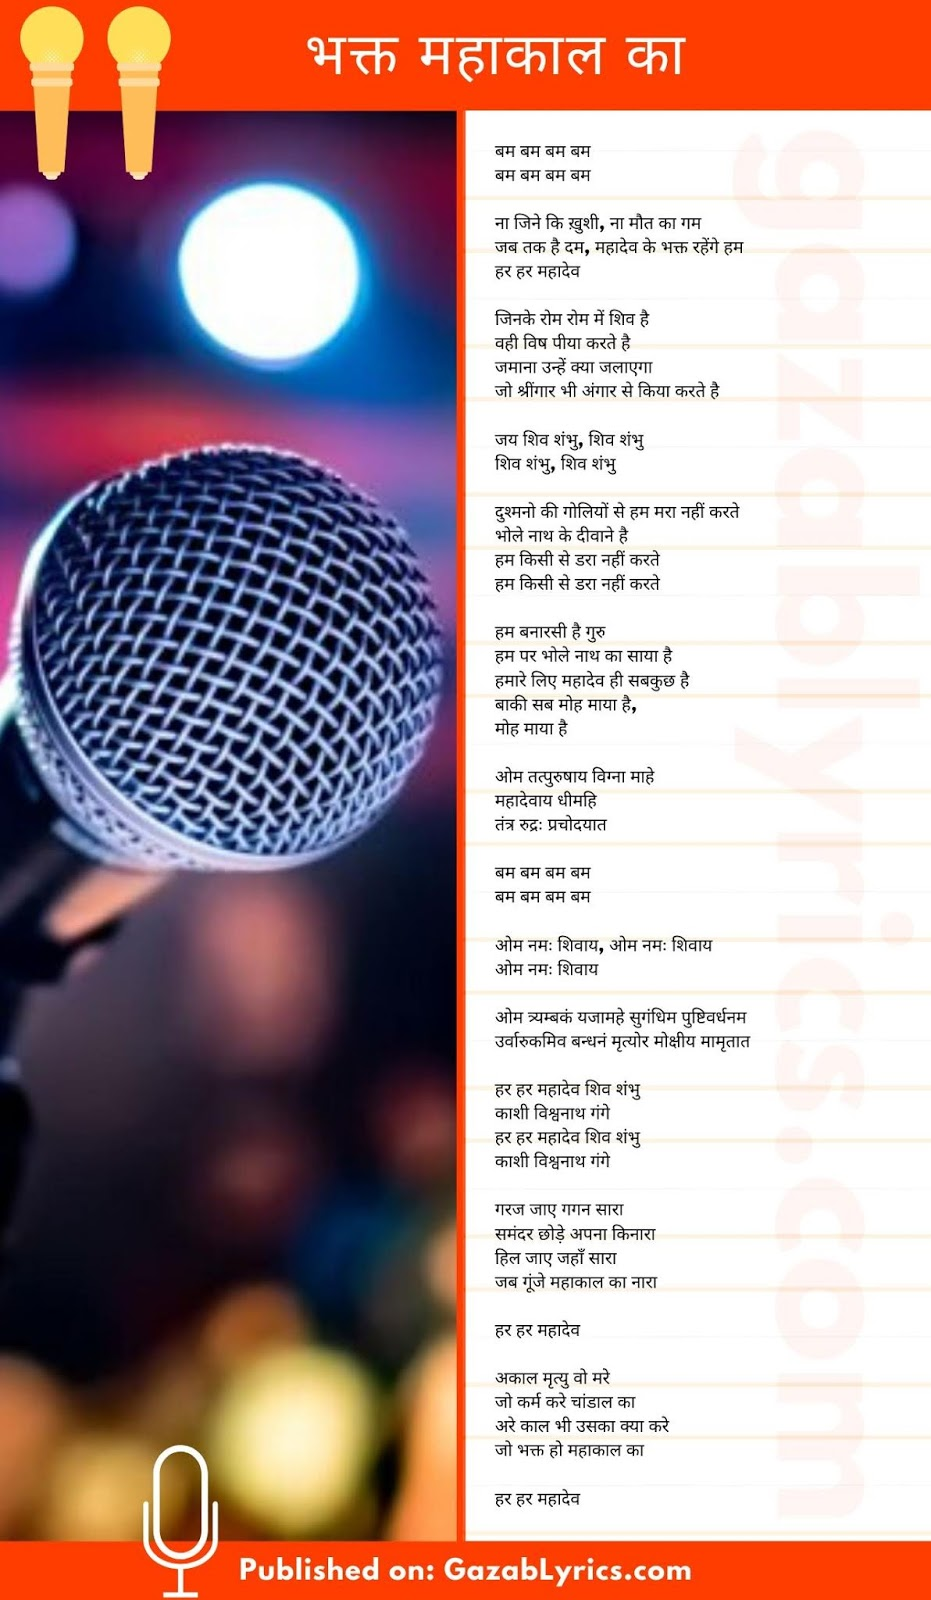 Bhakt Mahakal Ka song lyrics image